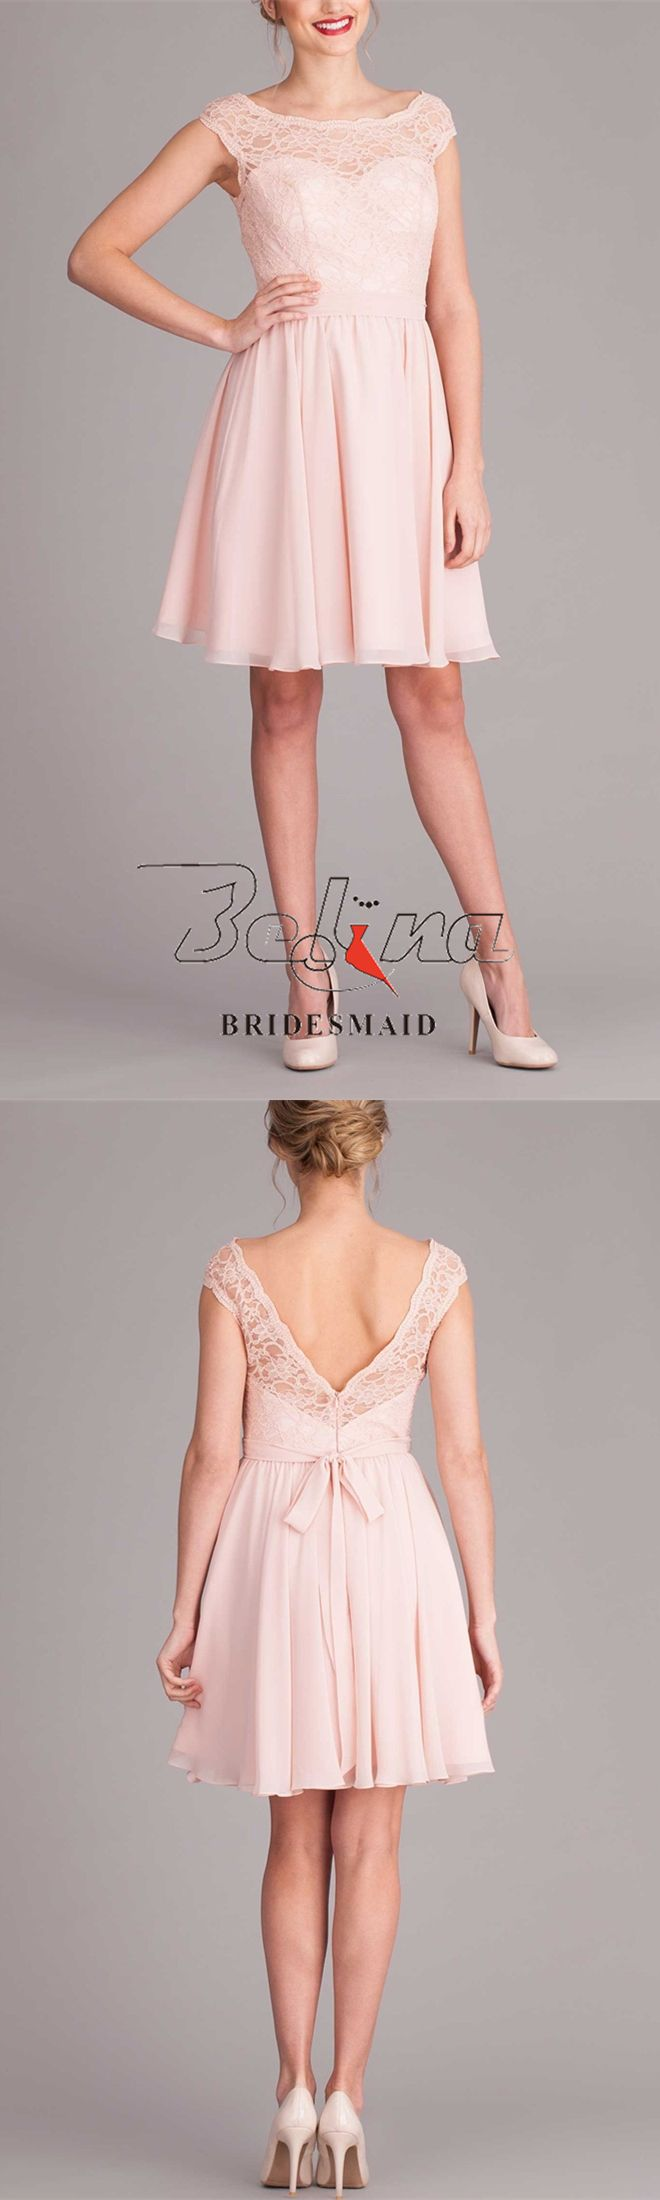 Sweet Blush Lace Illusion Neck Short Pleated Chiffon A-Line Bridesmaid Dress - See more at: http://www.belinabridesmaid.com/sweet-blush-lace-illusion-neck-short-pleated-chiffon-a-line-bridesmaid-dress-blb20074